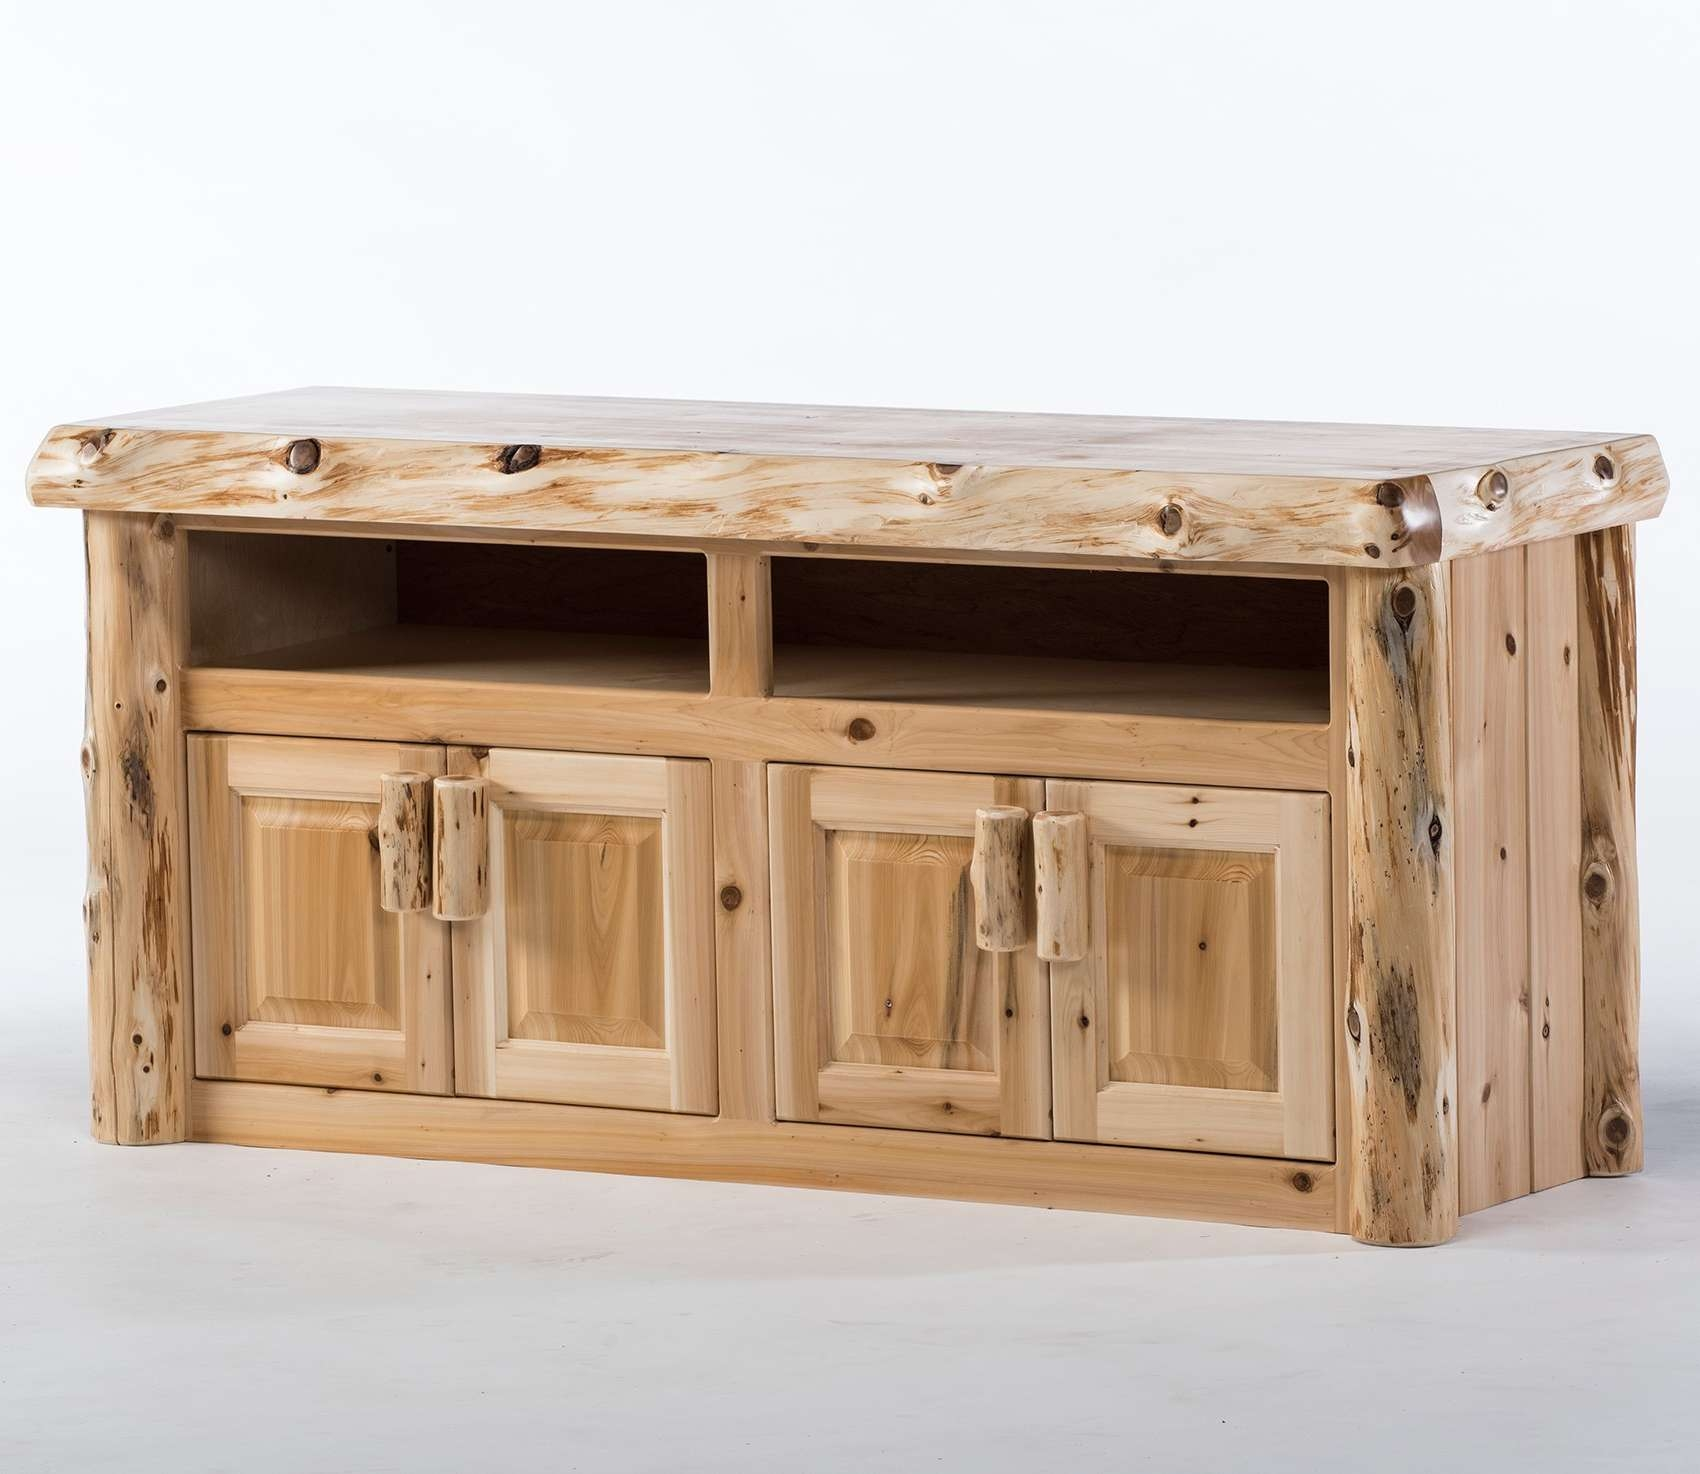 Reclaimed Wood Tv Stands & Rustic Tv Stands: Log Tv Stand & Rustic Inside Rustic Tv Stands (View 10 of 15)